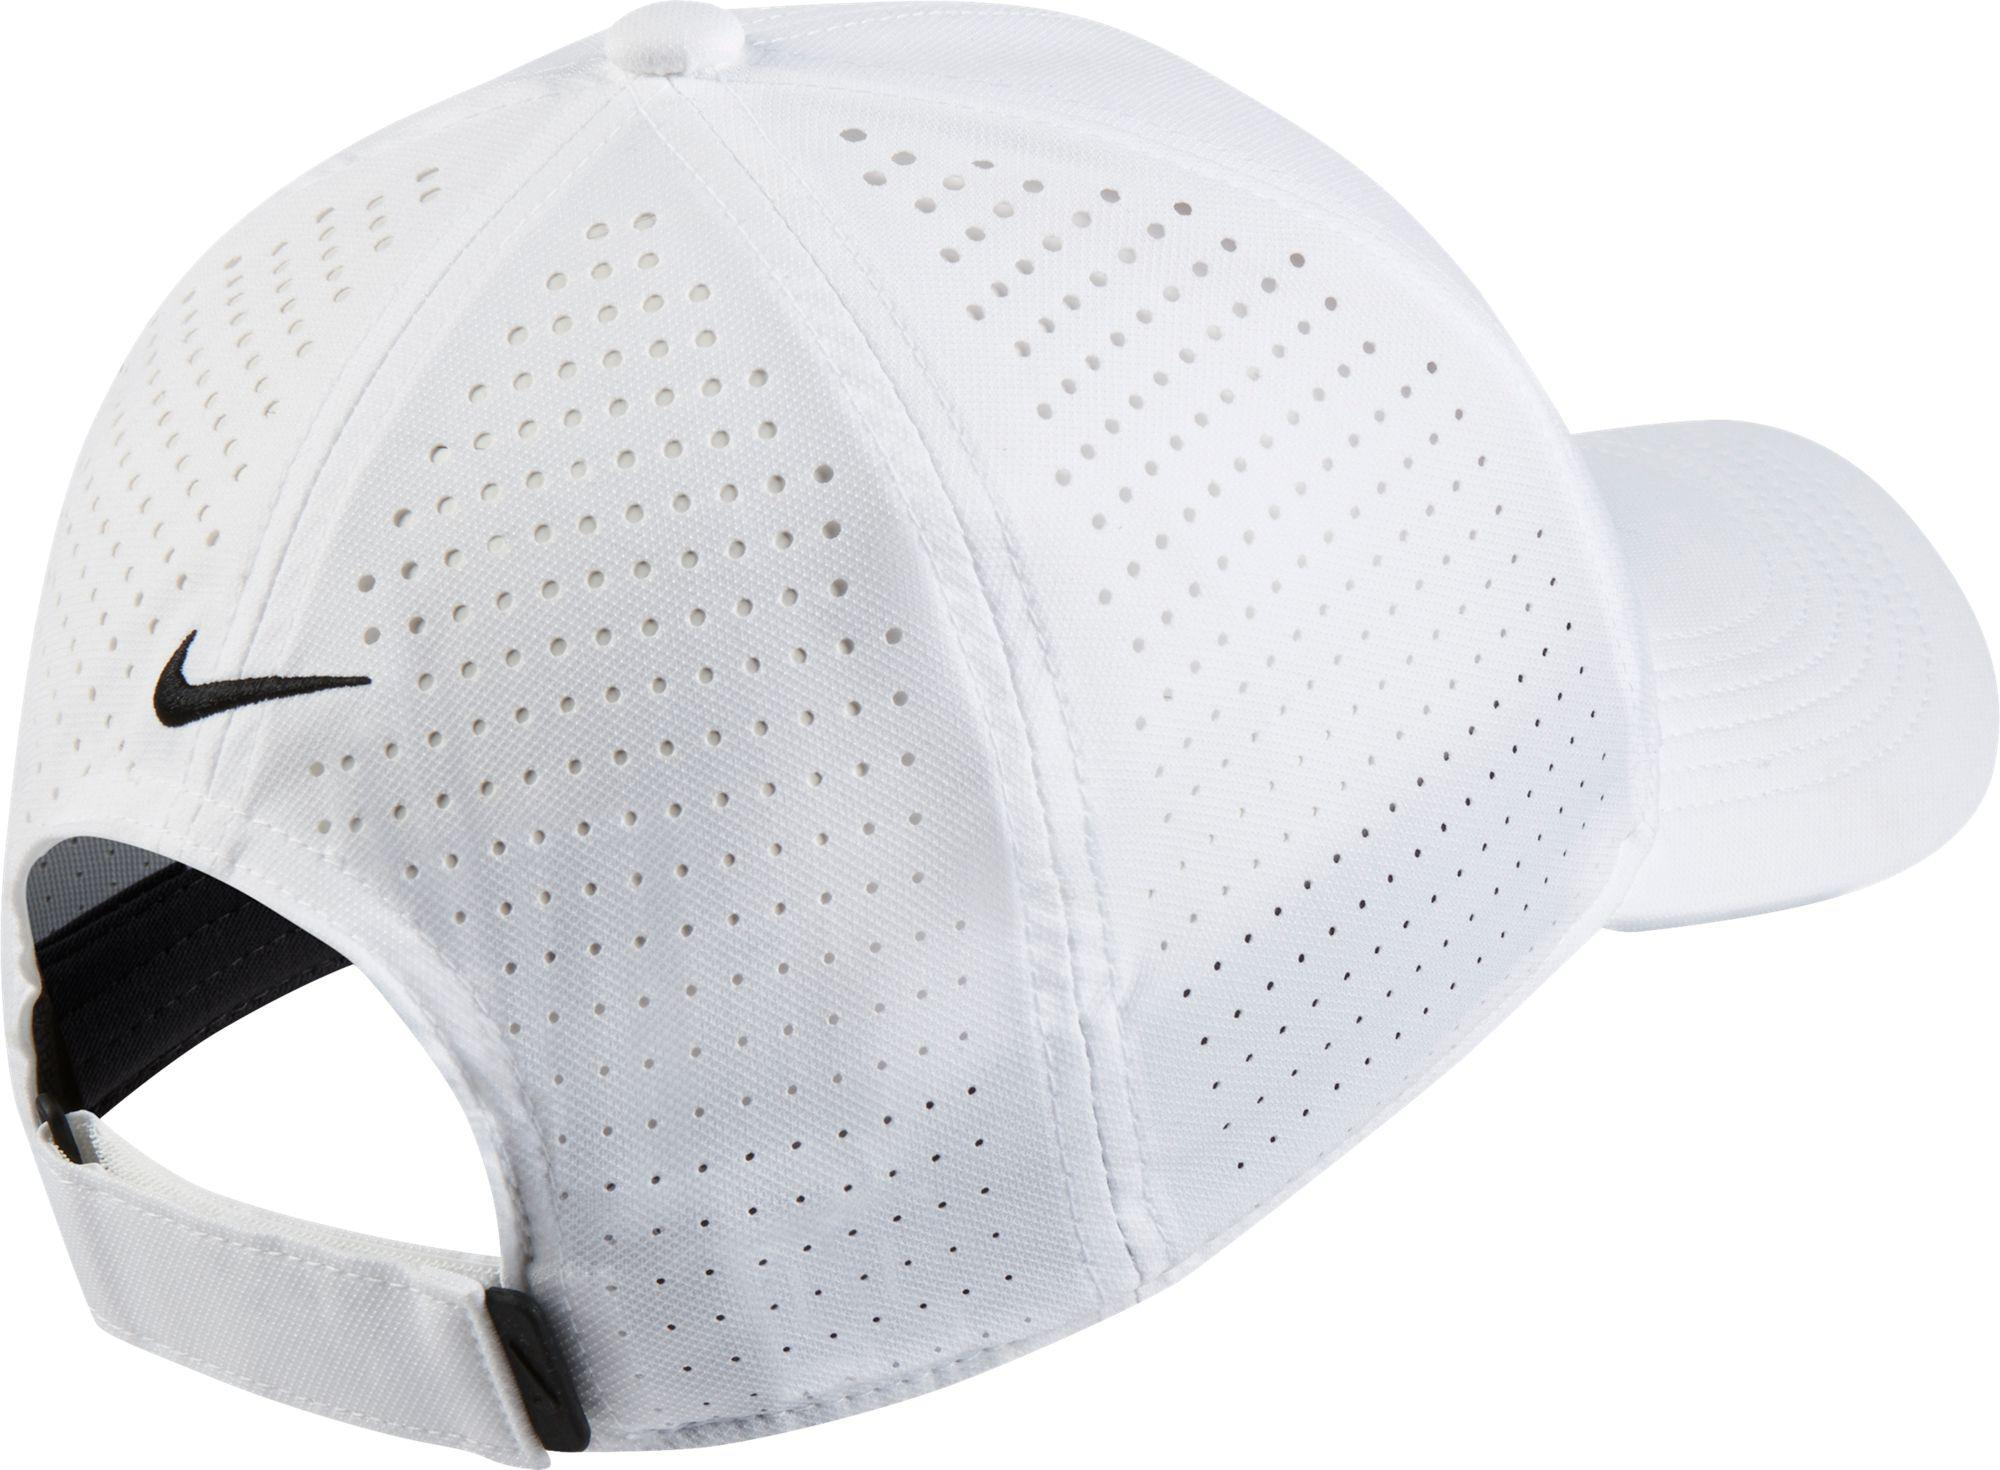 Nike - White Aerobill Legacy91 Perforated Golf Hat for Men - Lyst. View  fullscreen 8bb748b9262